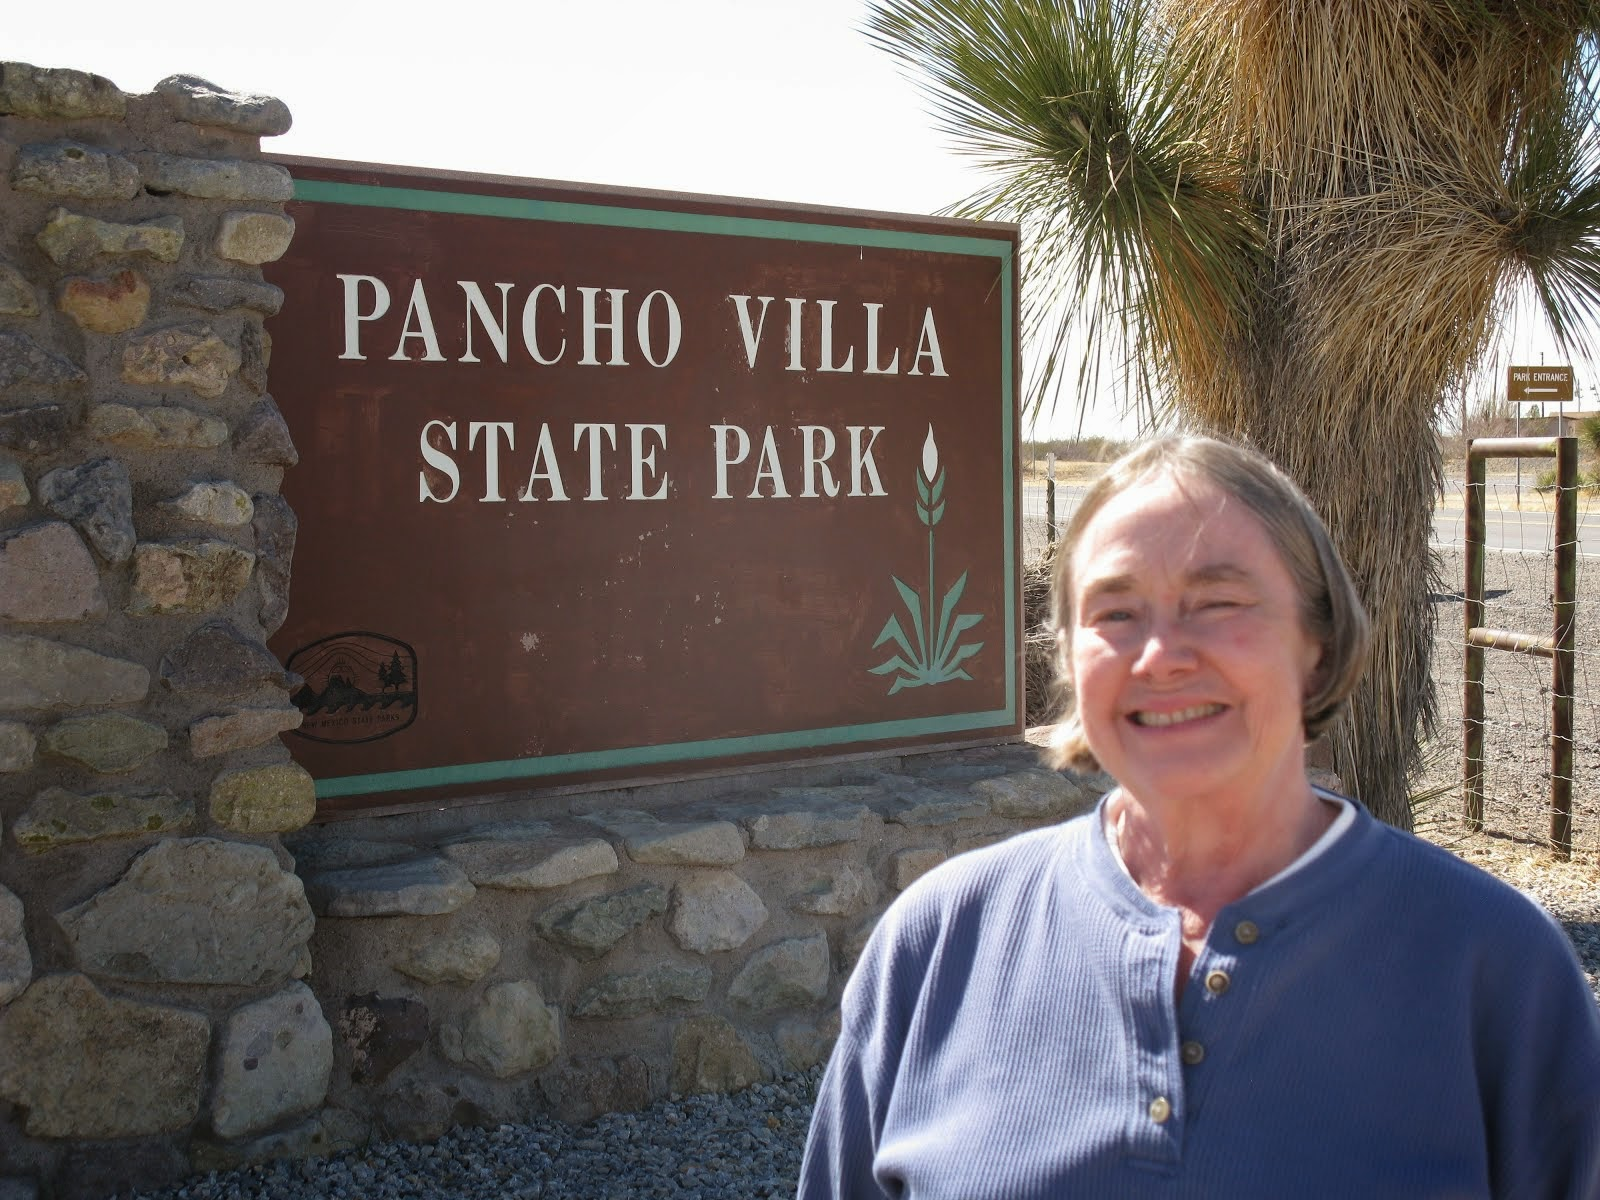 Pancho Villa State Park, Columbus, NM, and a tourist